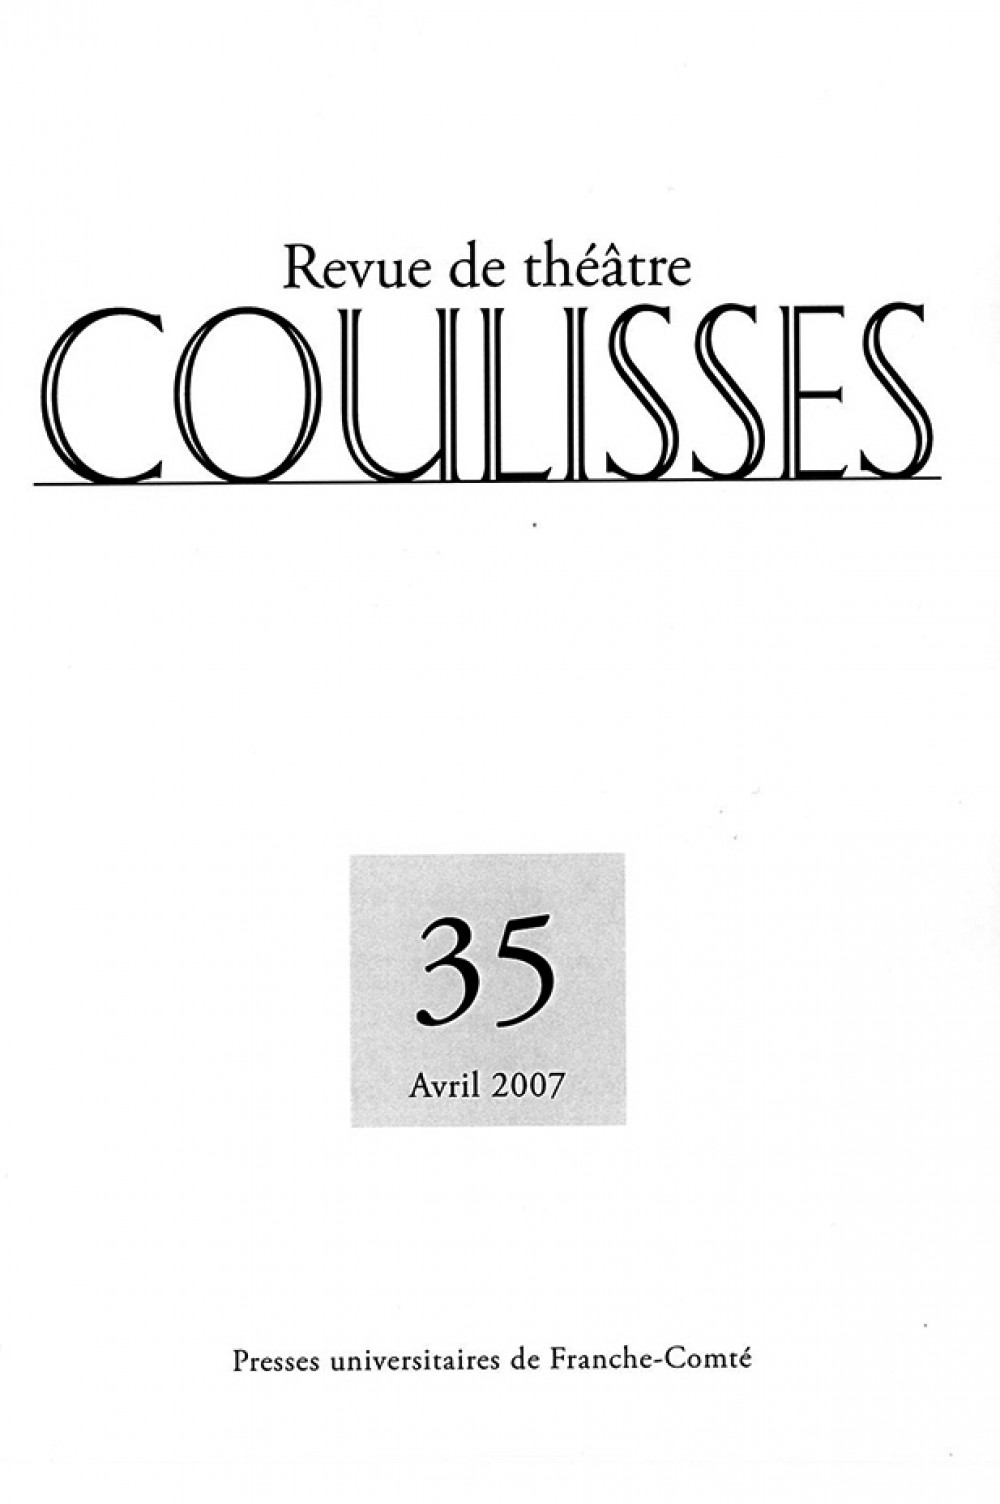 Coulisses 35